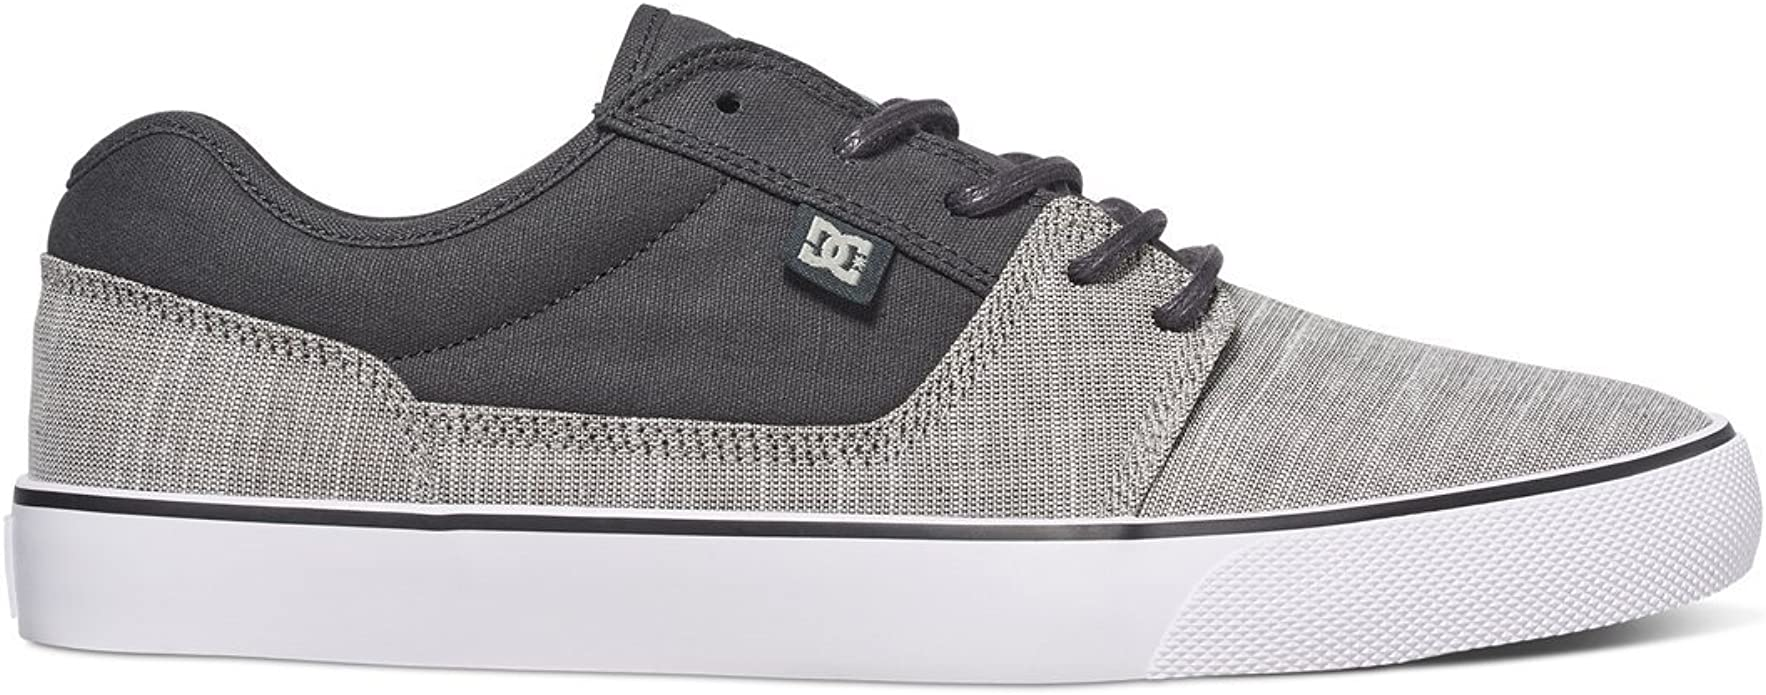 DC Shoes Tonik TX SE Sneakers Skateschuhe Herren Holzkohle/Grau (Charcoal/Grey)